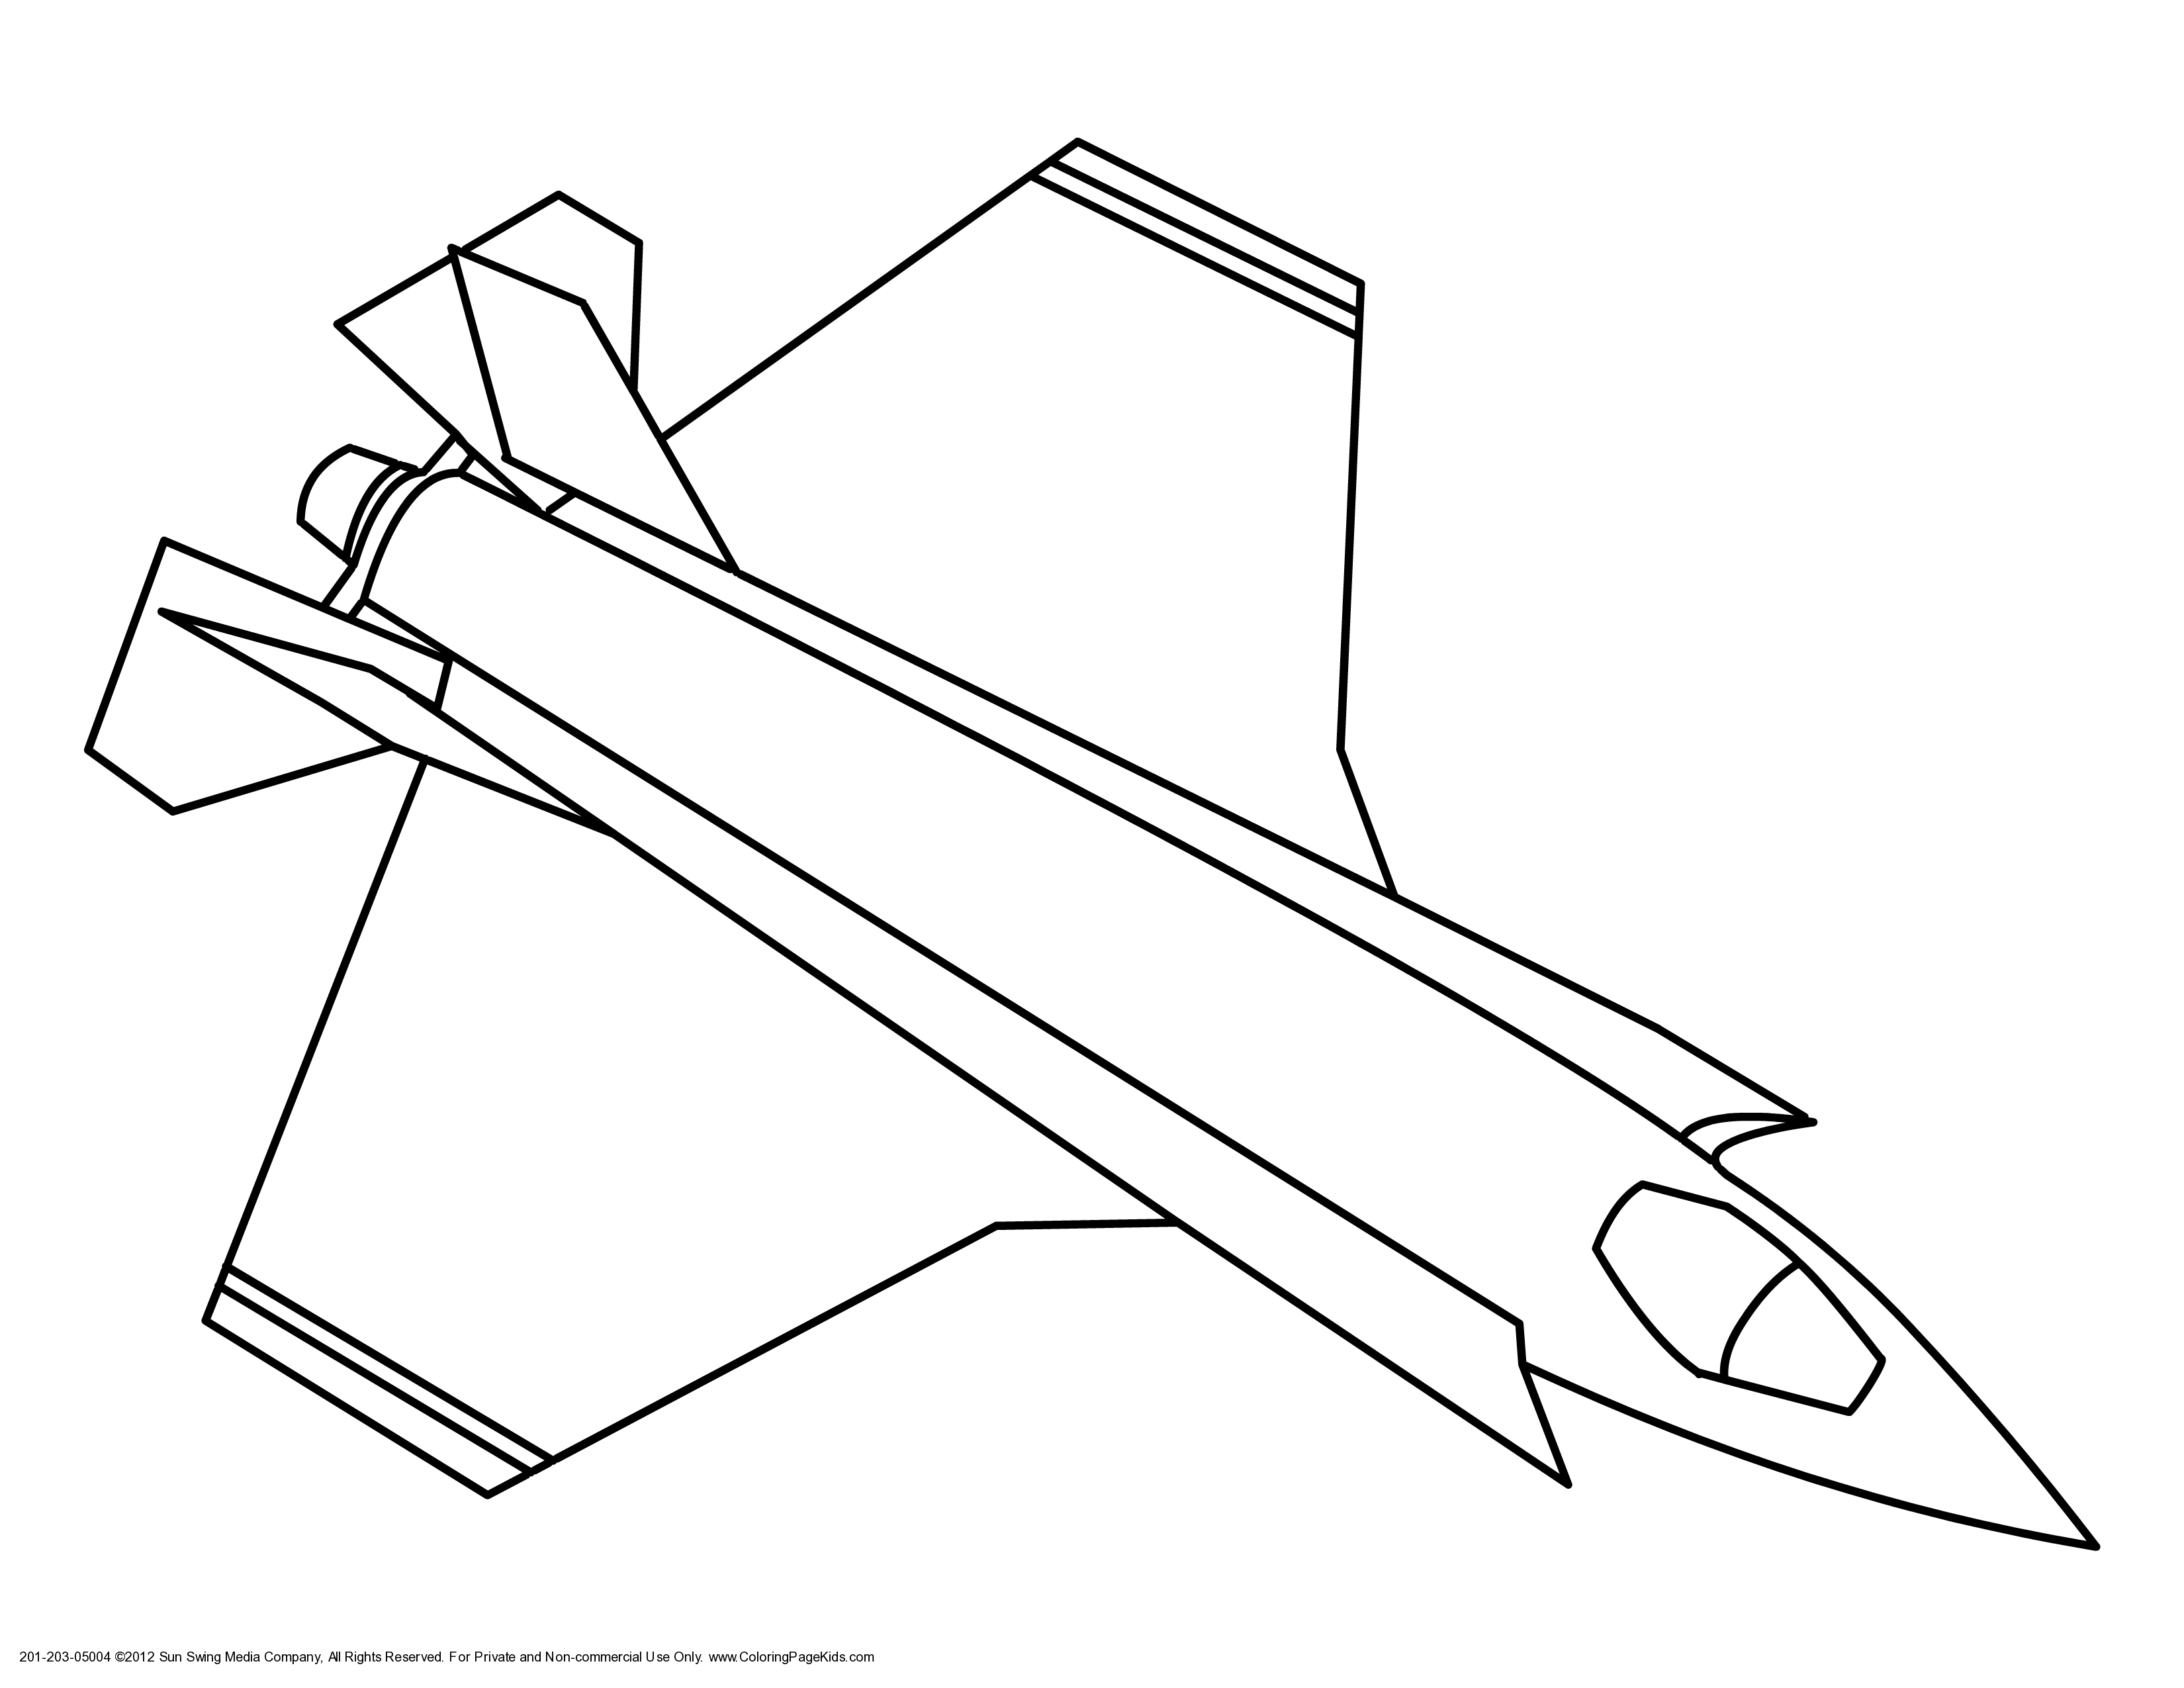 tinkerbell coloring pages - jet plane coloring pages